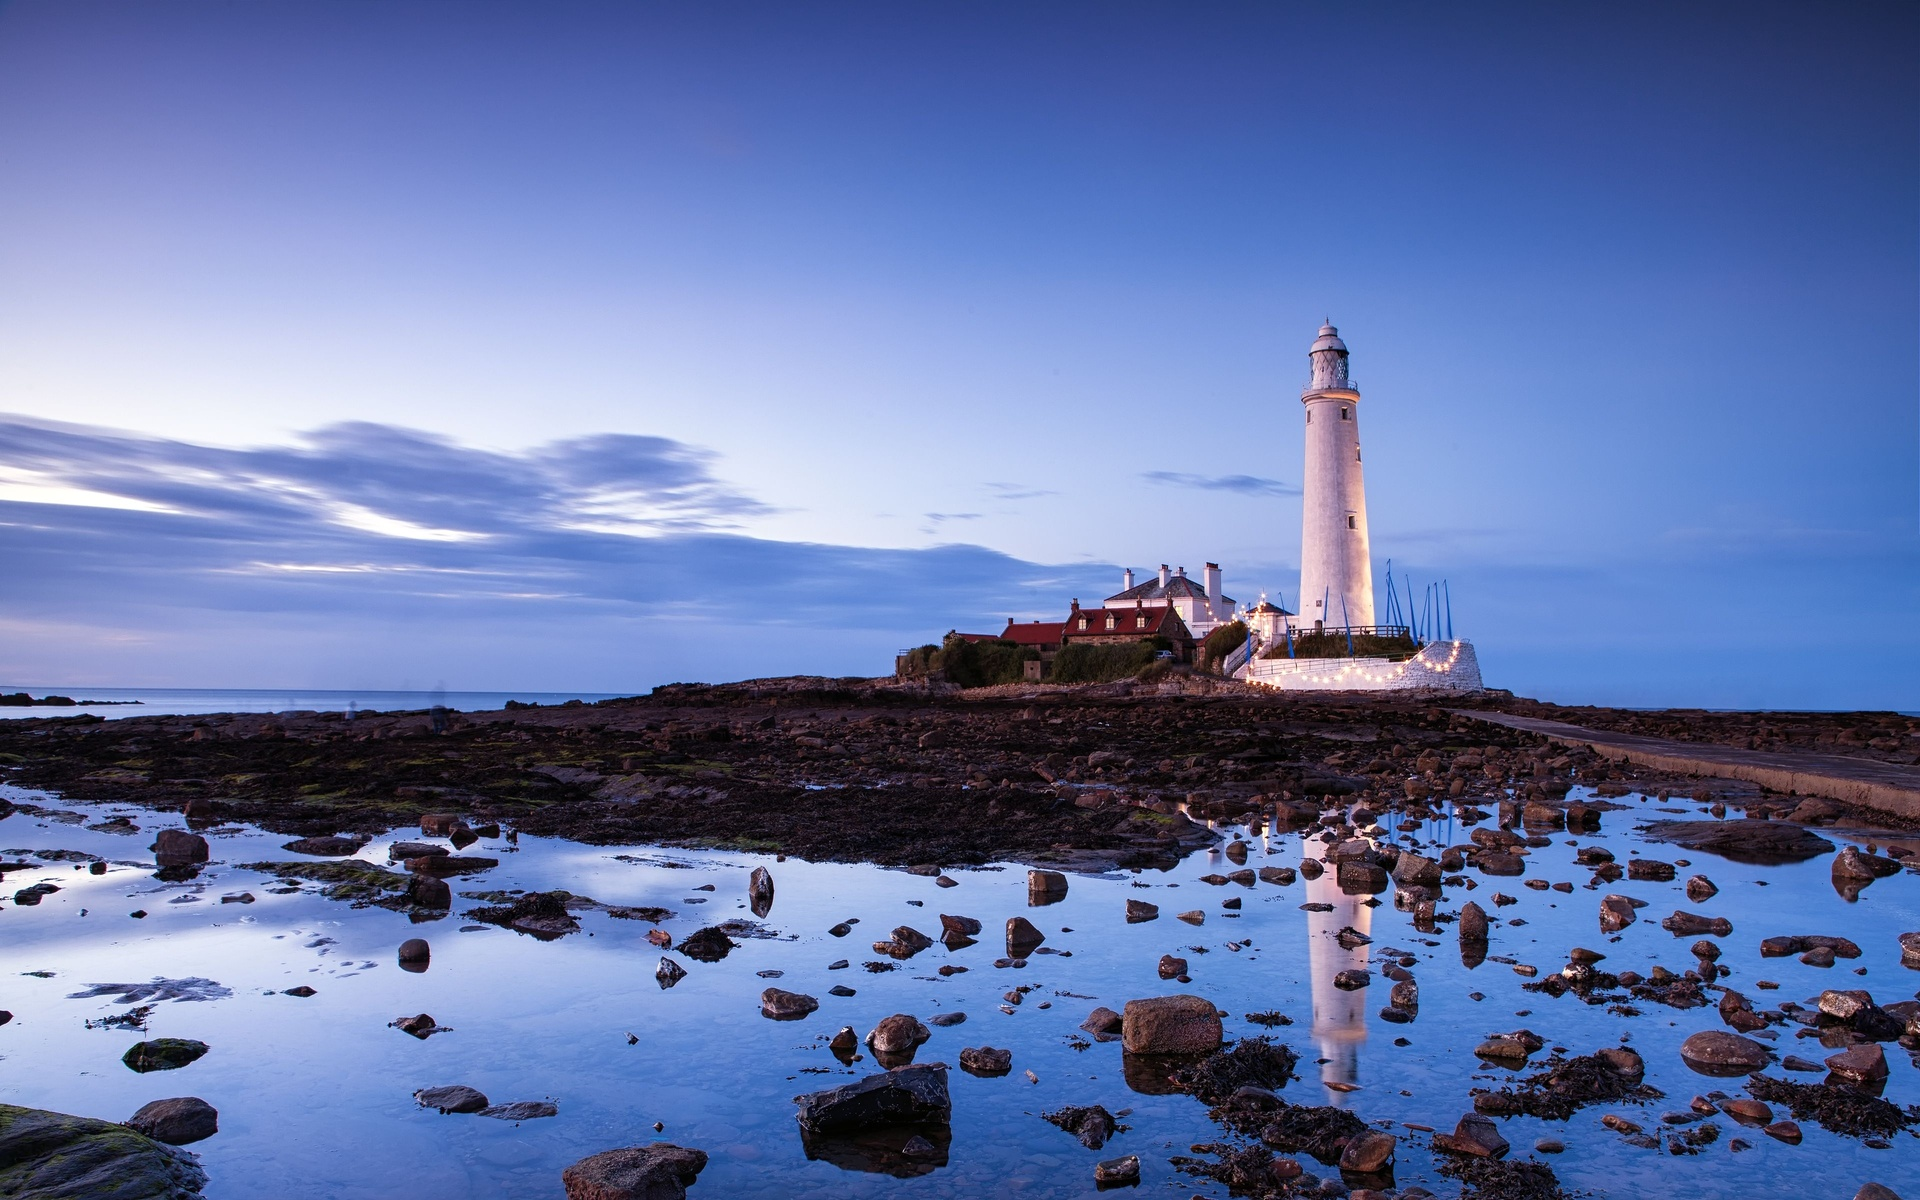 Lighthouse Hd Wallpapers: Lighthouse Full HD Wallpaper And Background Image